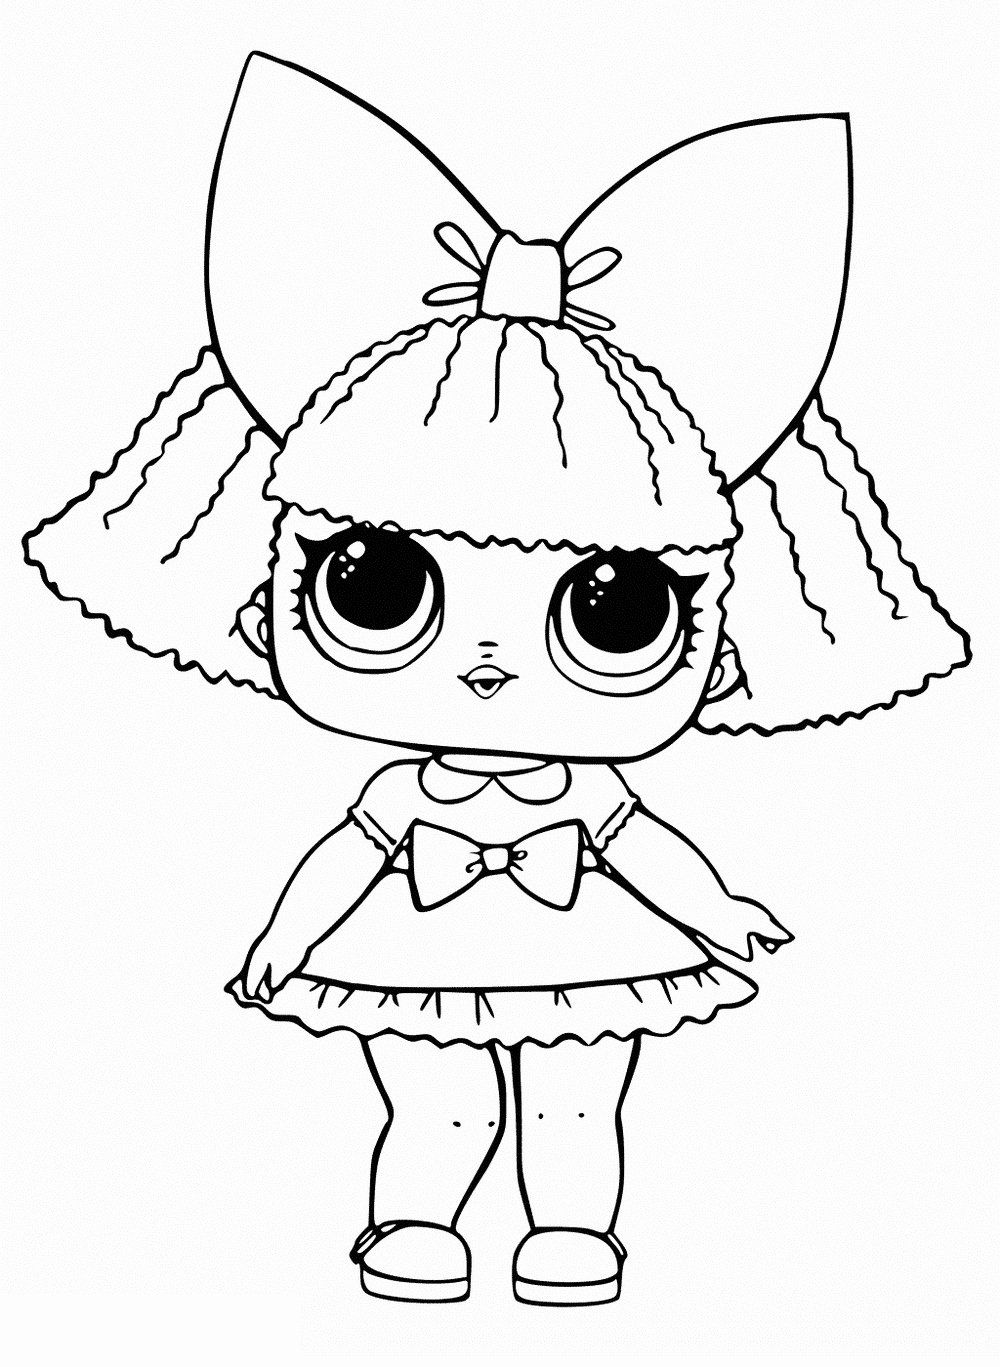 Lol Dolls Coloring Page Beautiful Coloring Pages Of Lol Surprise Dolls 80 Pieces Of Black In 2020 Puppy Coloring Pages Baby Coloring Pages Lol Dolls